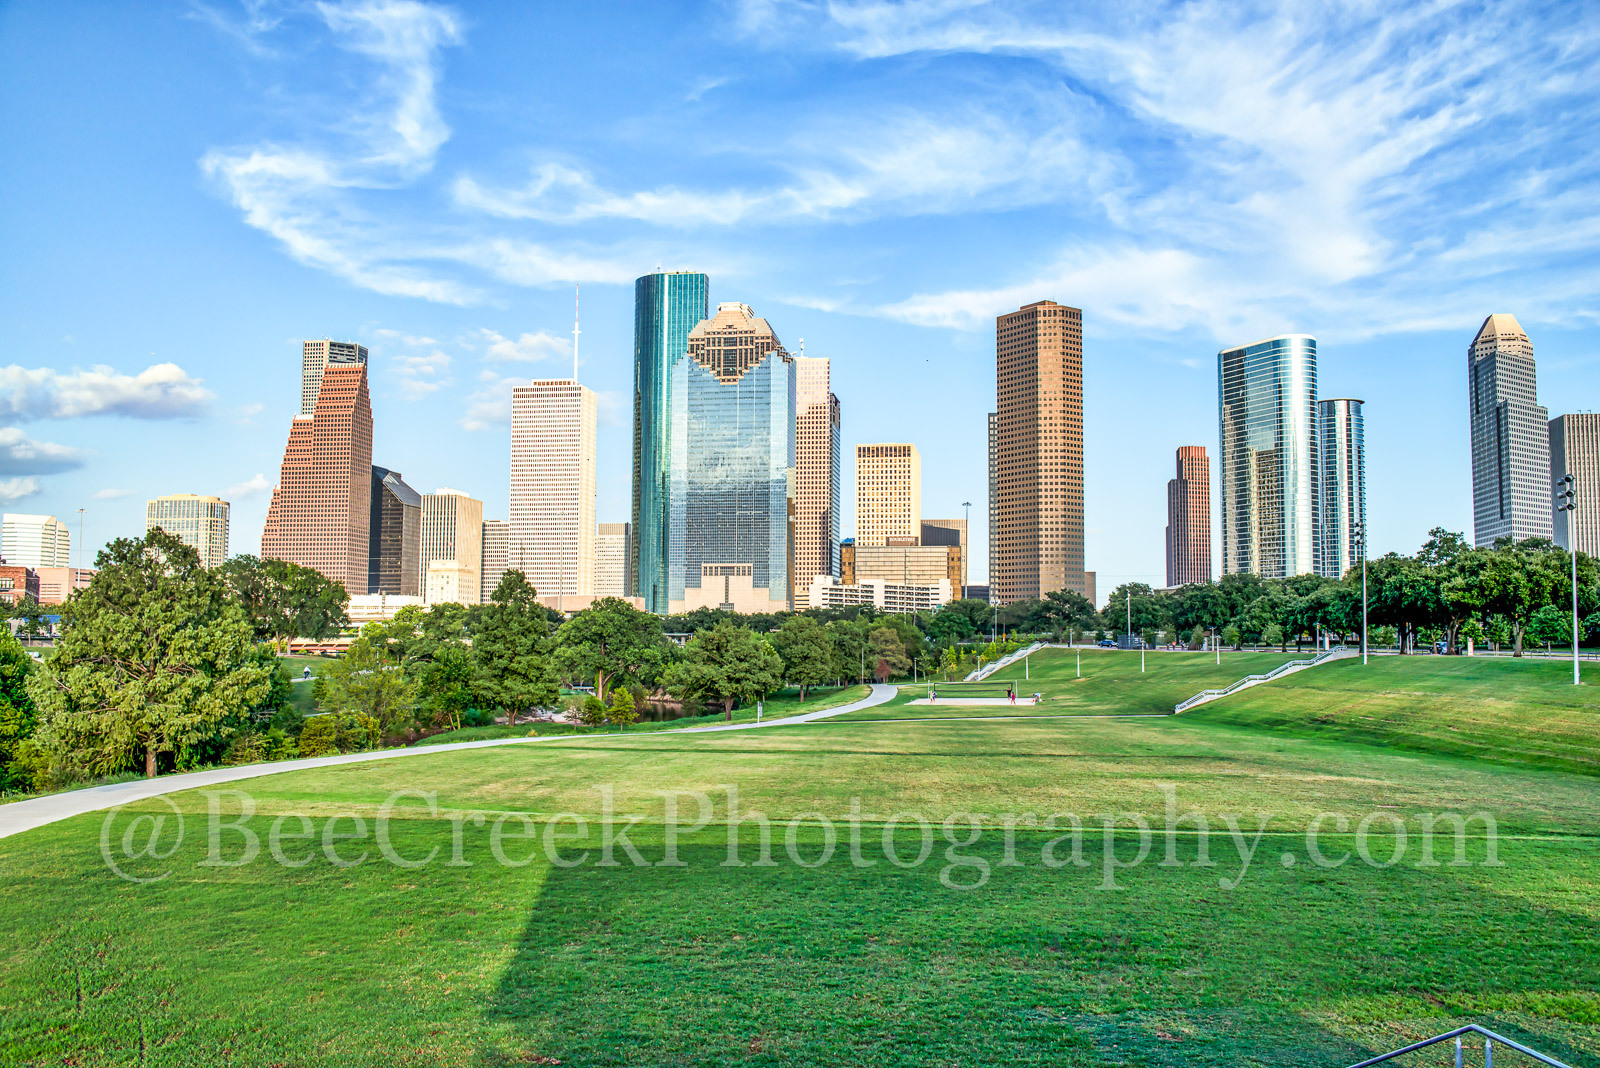 Houston skyline, Houston, skyline, cities, city, citycapes, cityscape, downtown, exercise, landscape, modern, park,  urban, views, walking, Buffalo Bayou, Eleanor Tinsley Park, Allen Parkway, Memorial